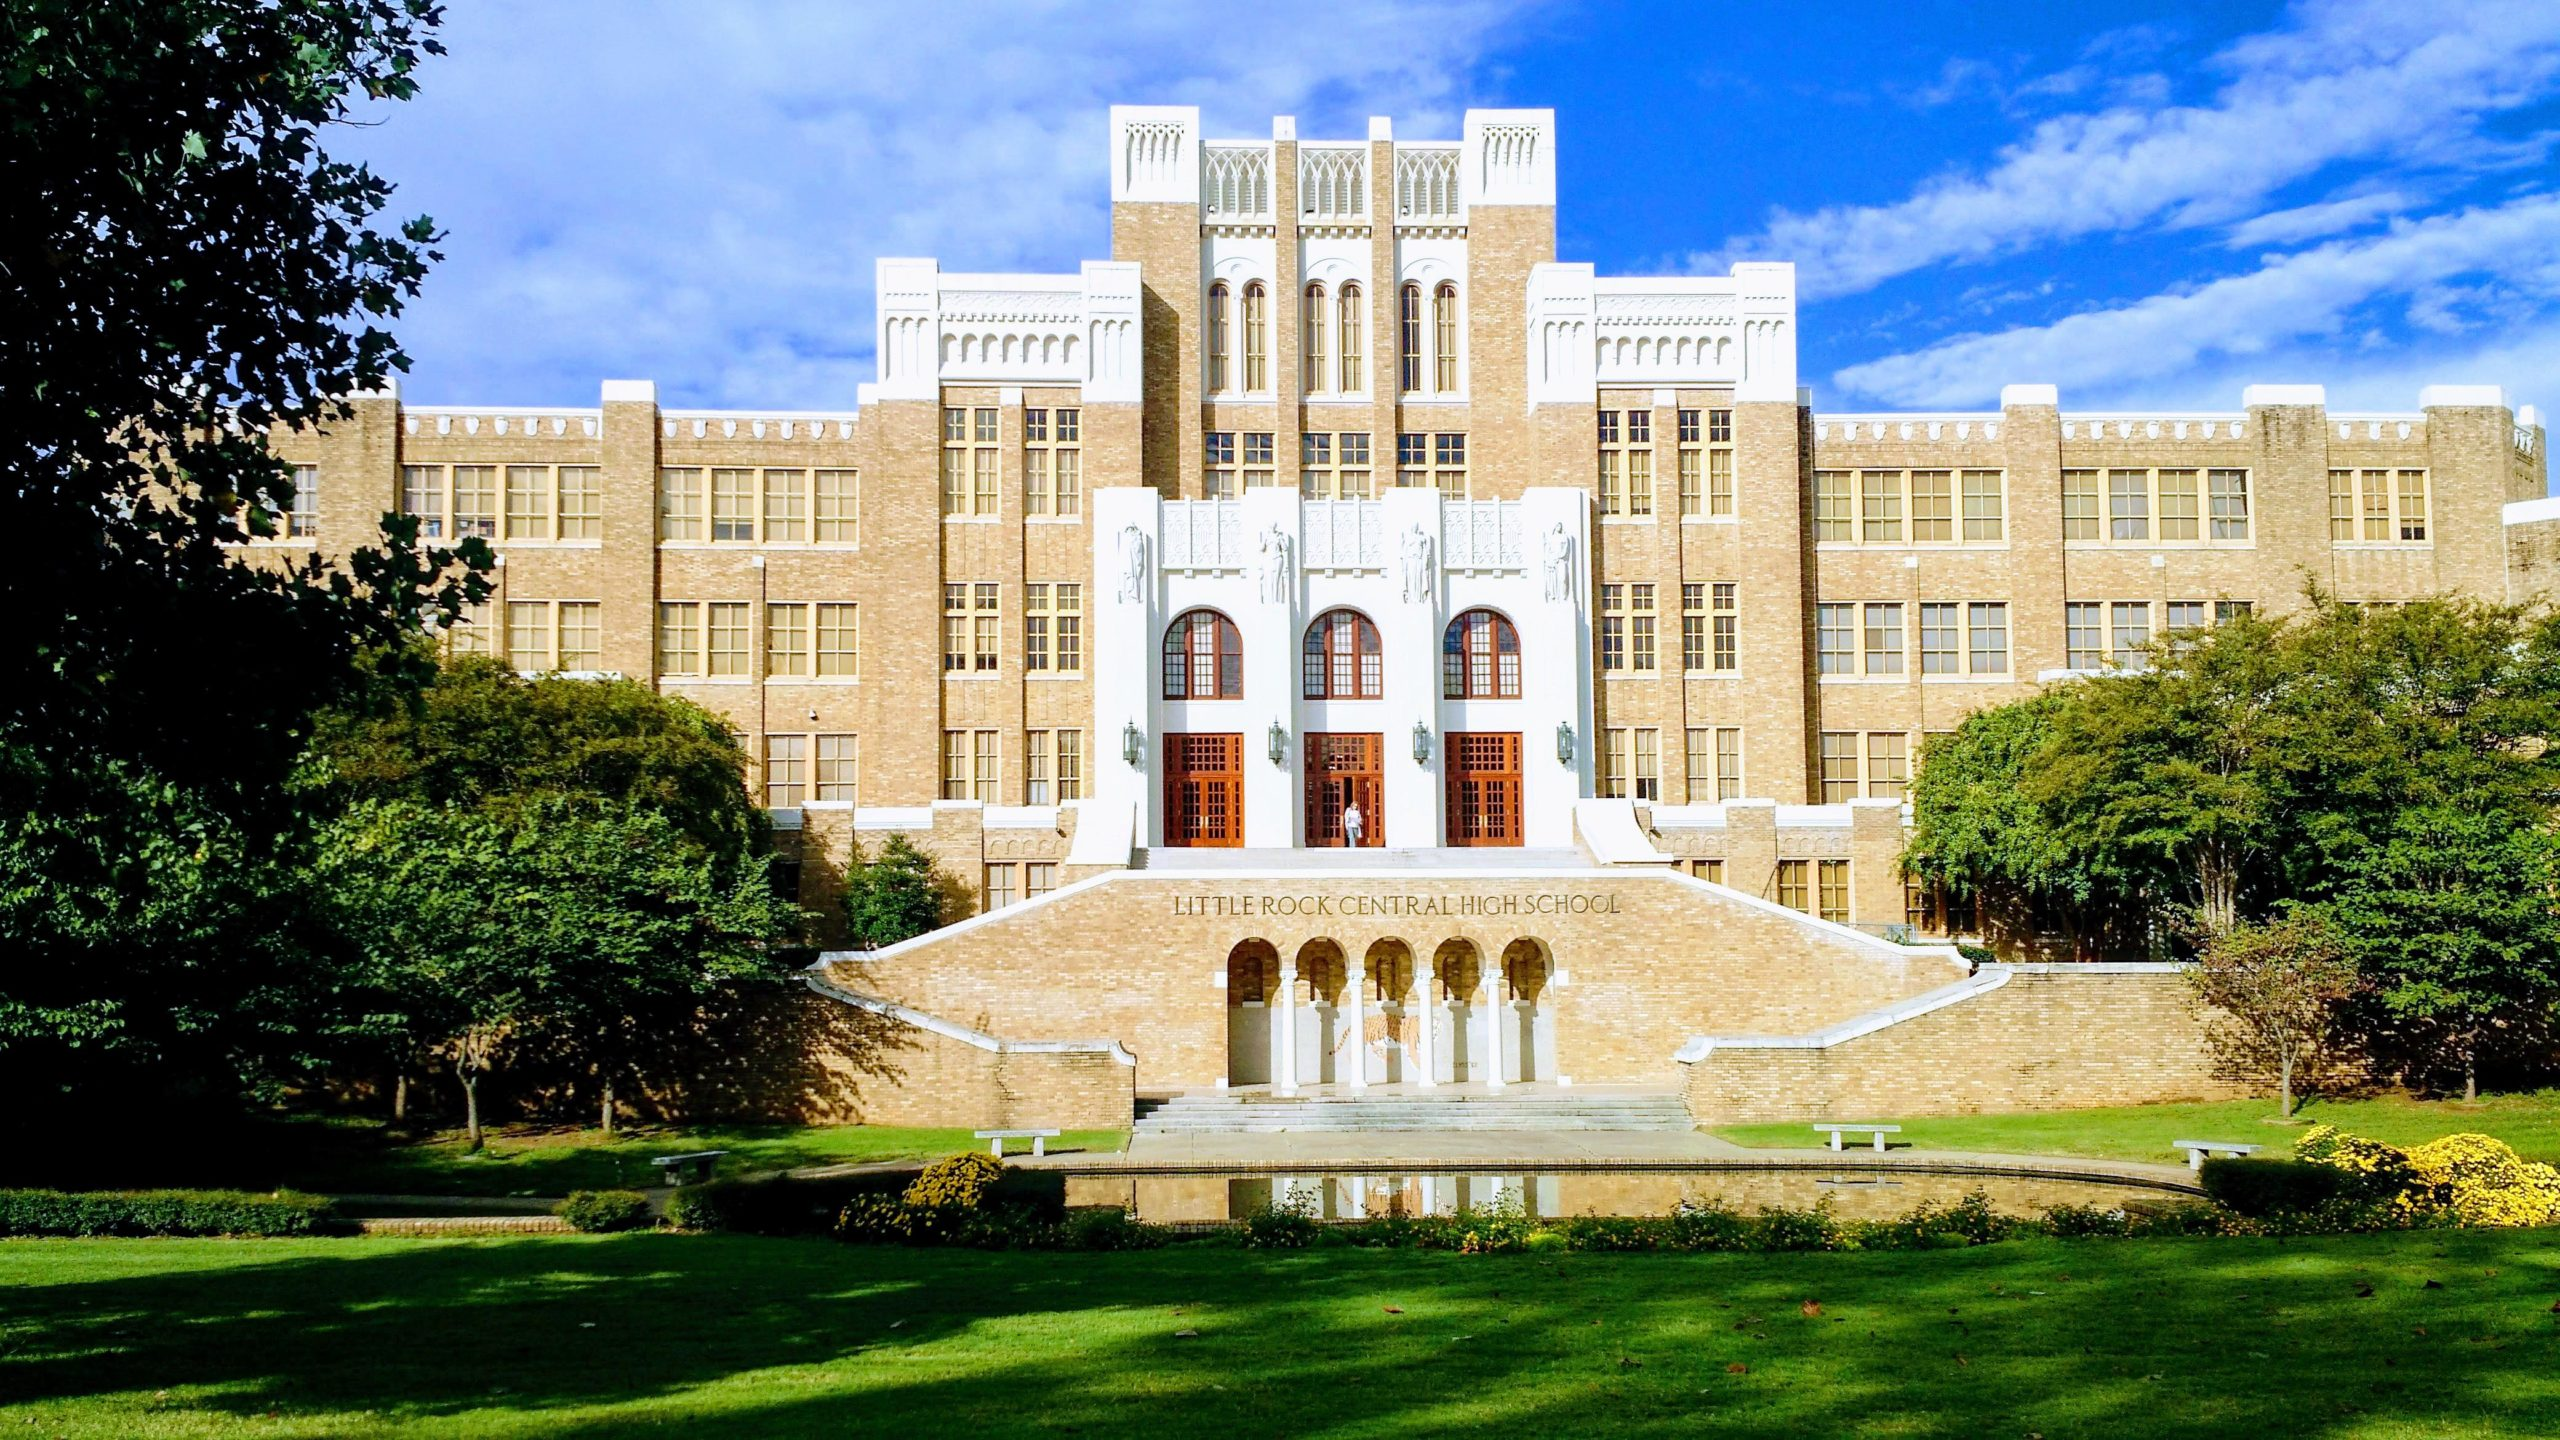 Tan facade of the three story Little Rock Central High School with large white columns framing the three entrance doors.